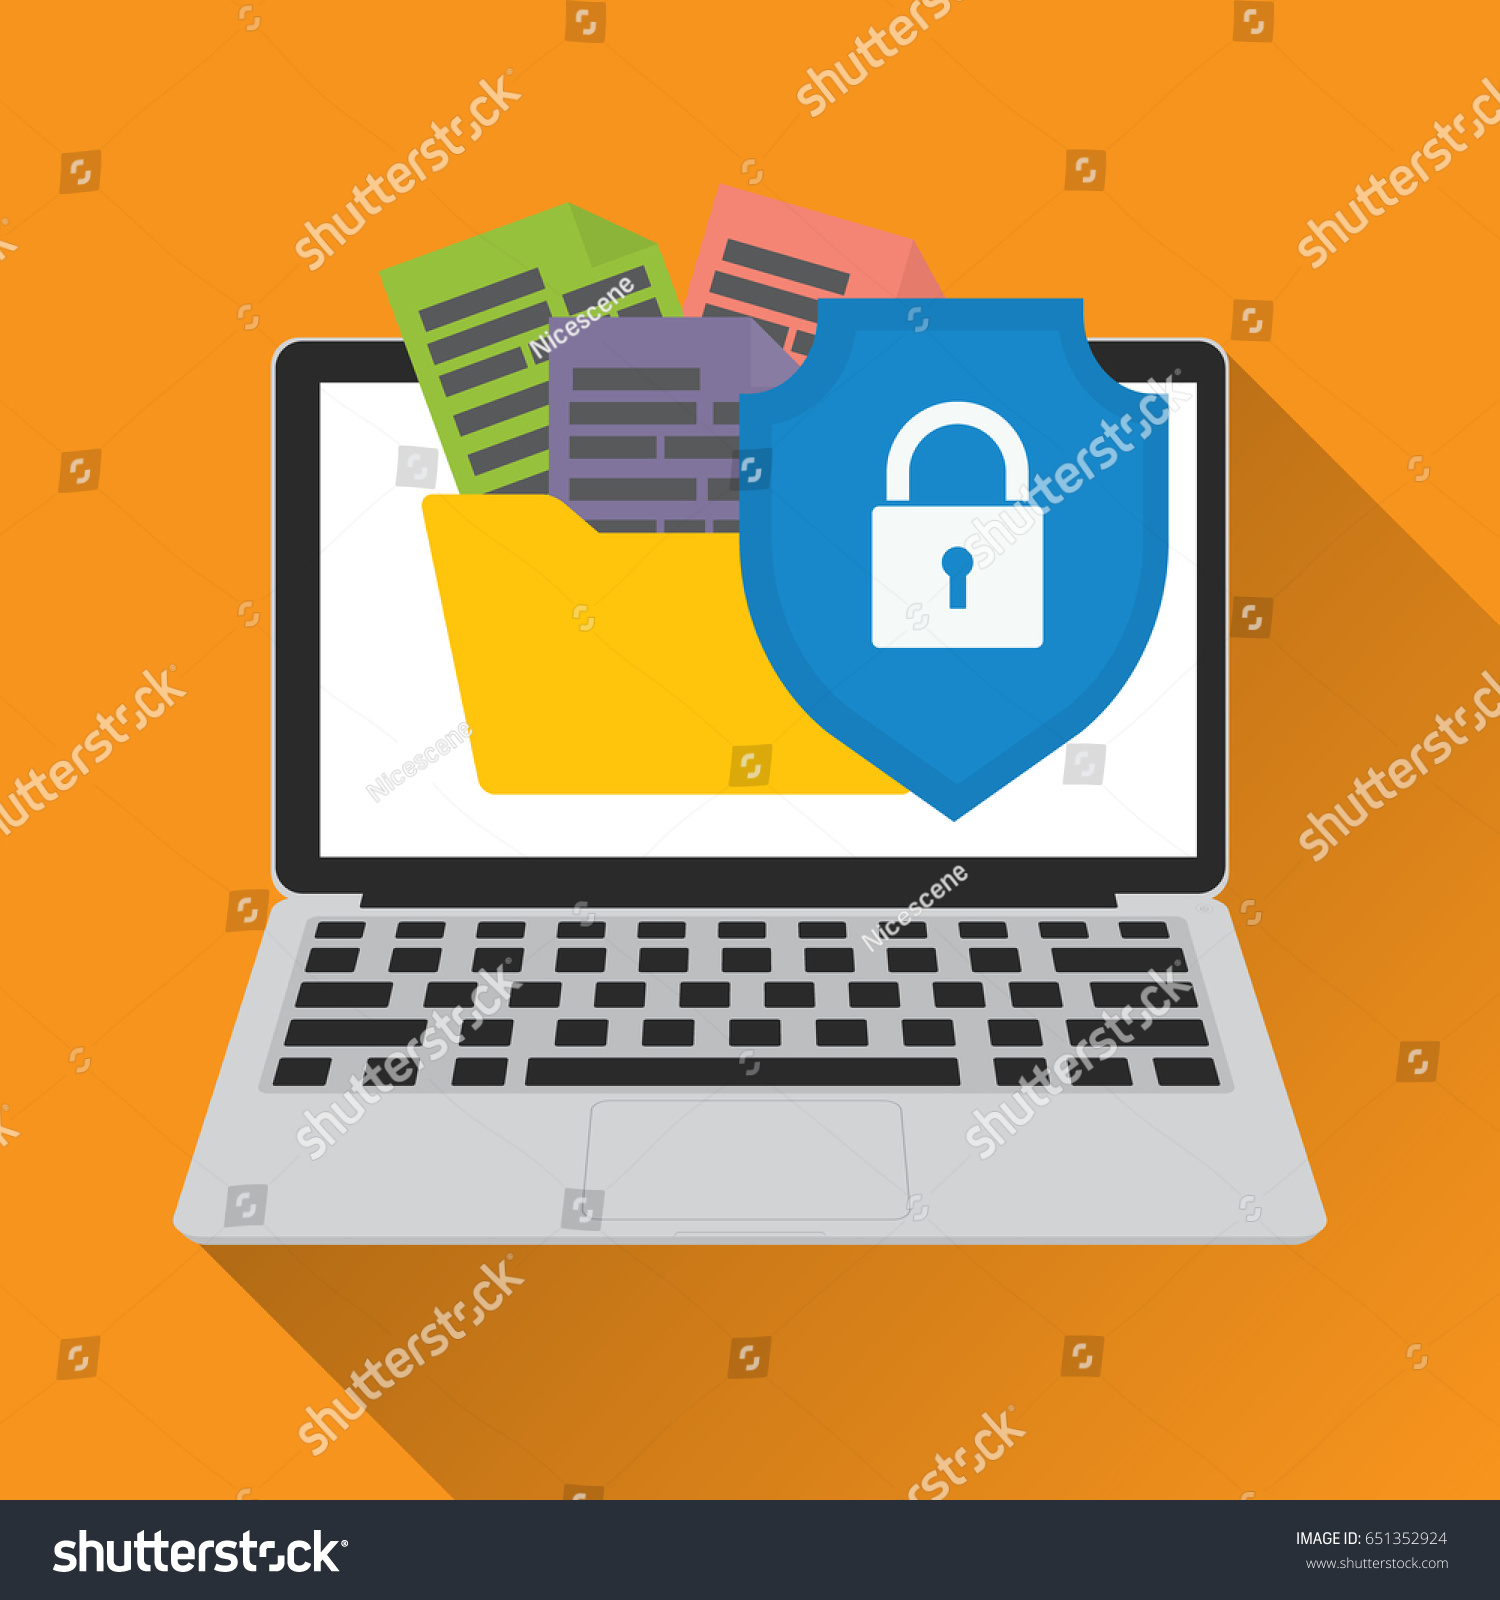 Data Secured Access Protection Vector Illustration Stock Security System Online And Cybercrime Concept